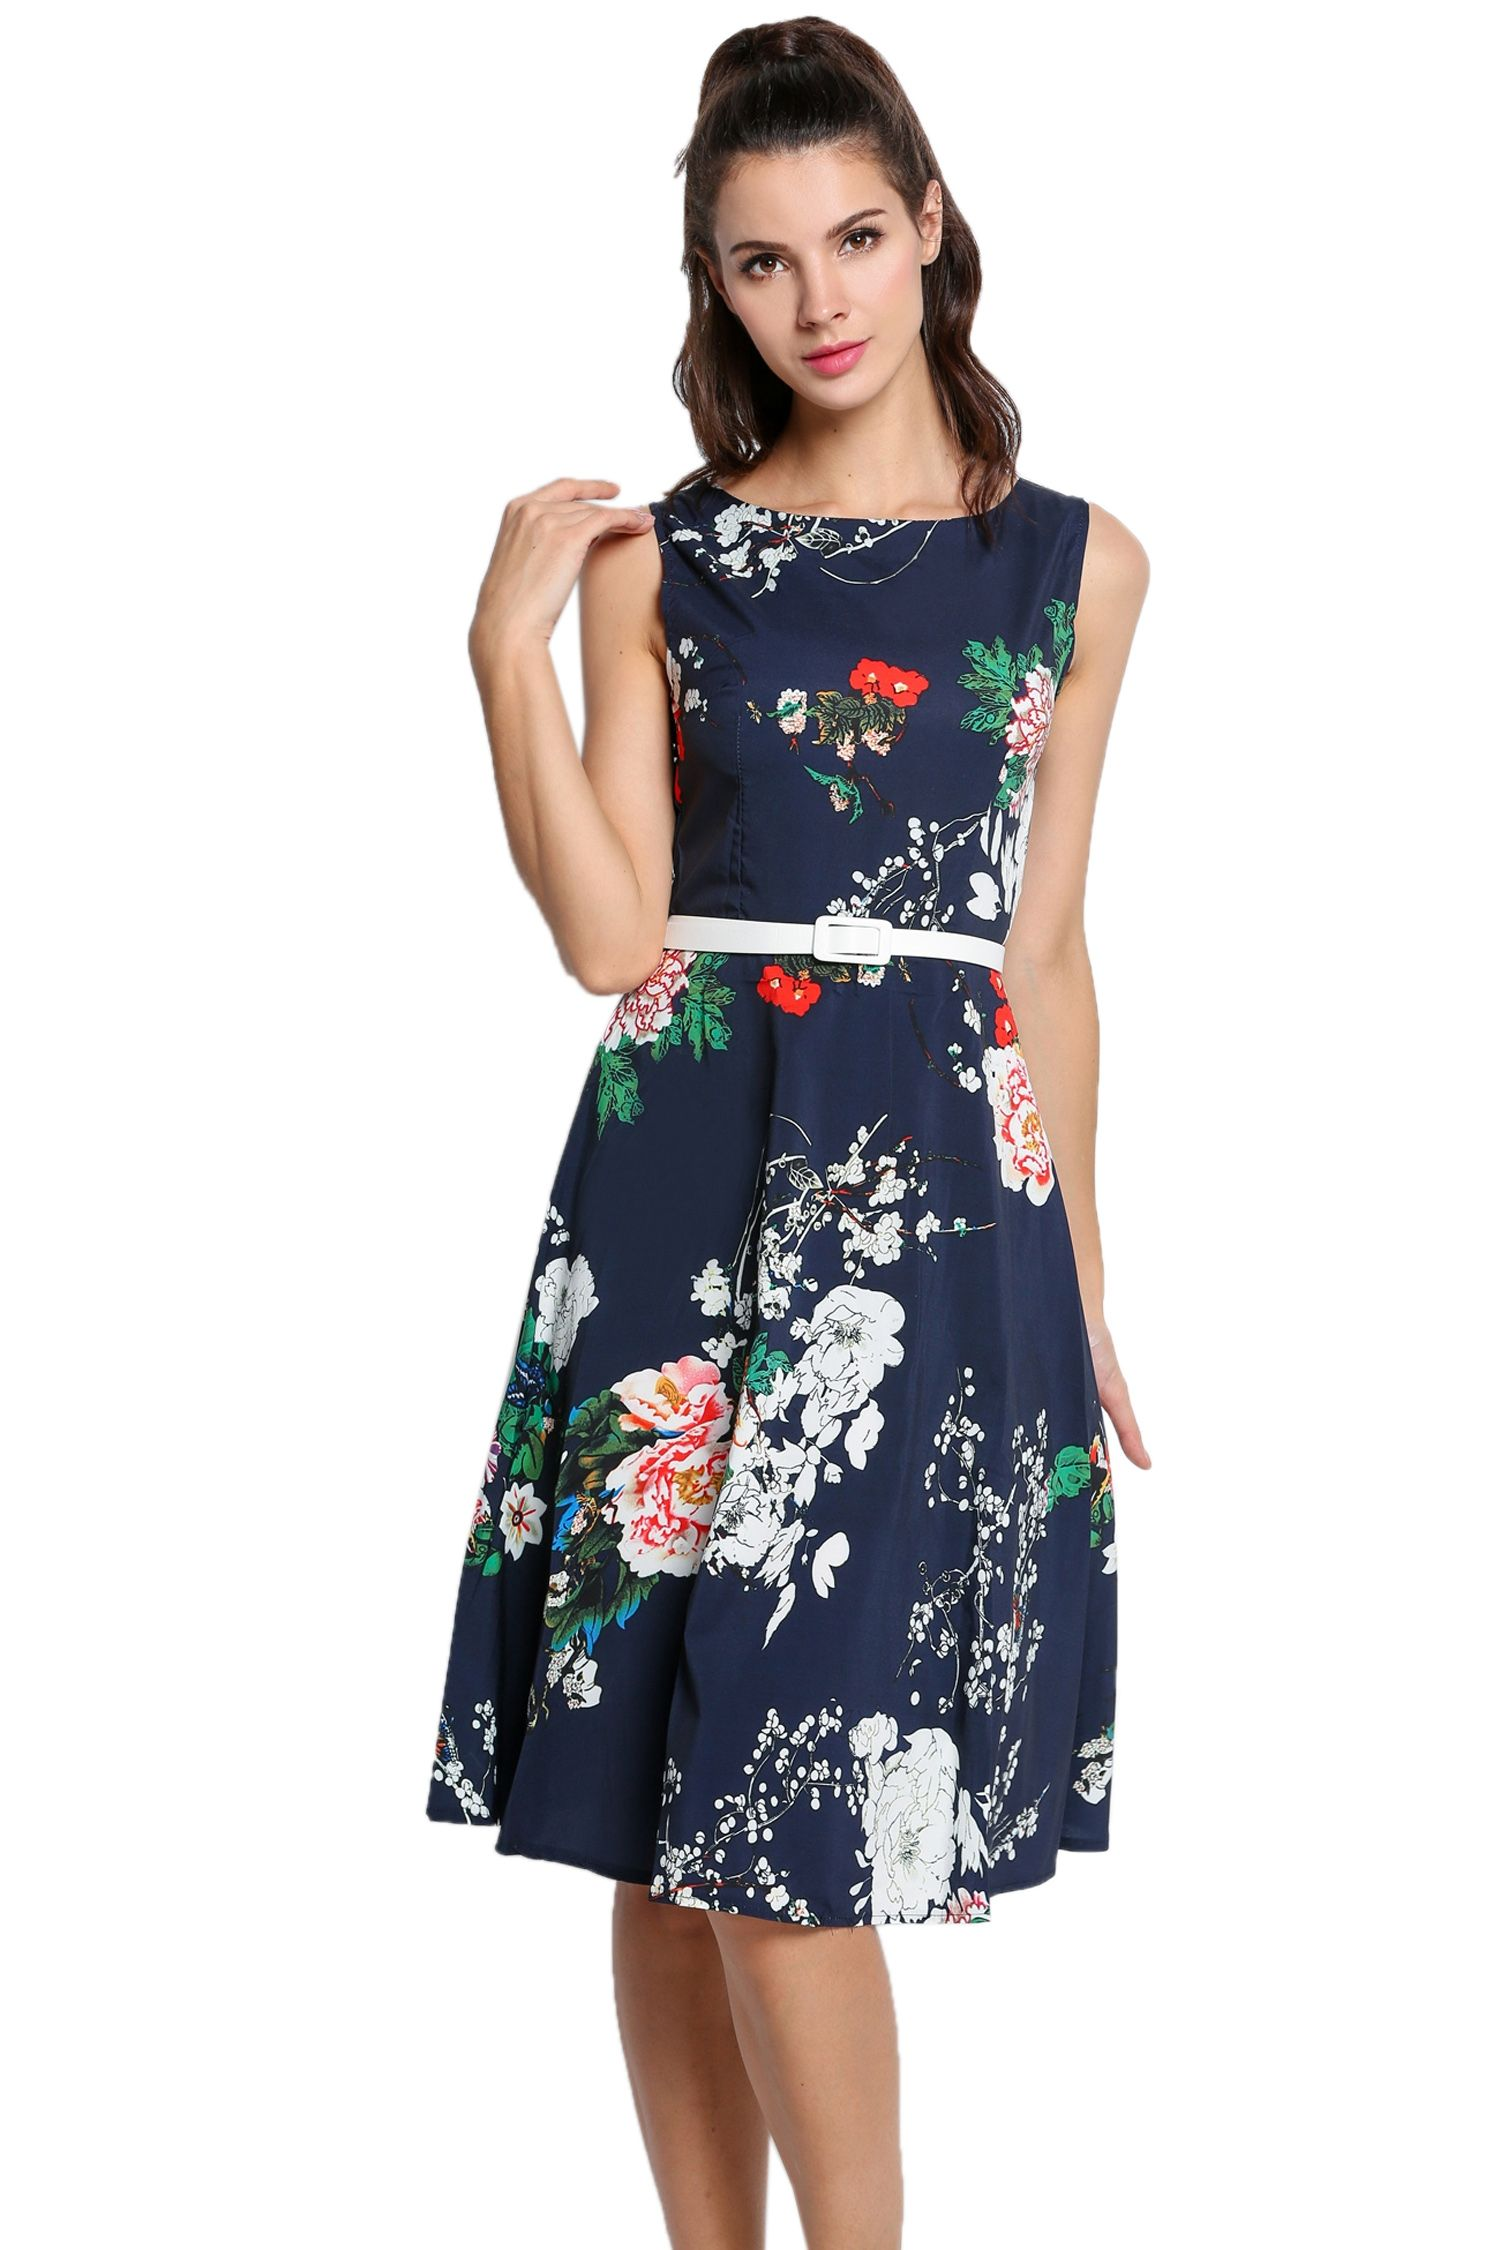 Dark blue Floral with Women Dresses